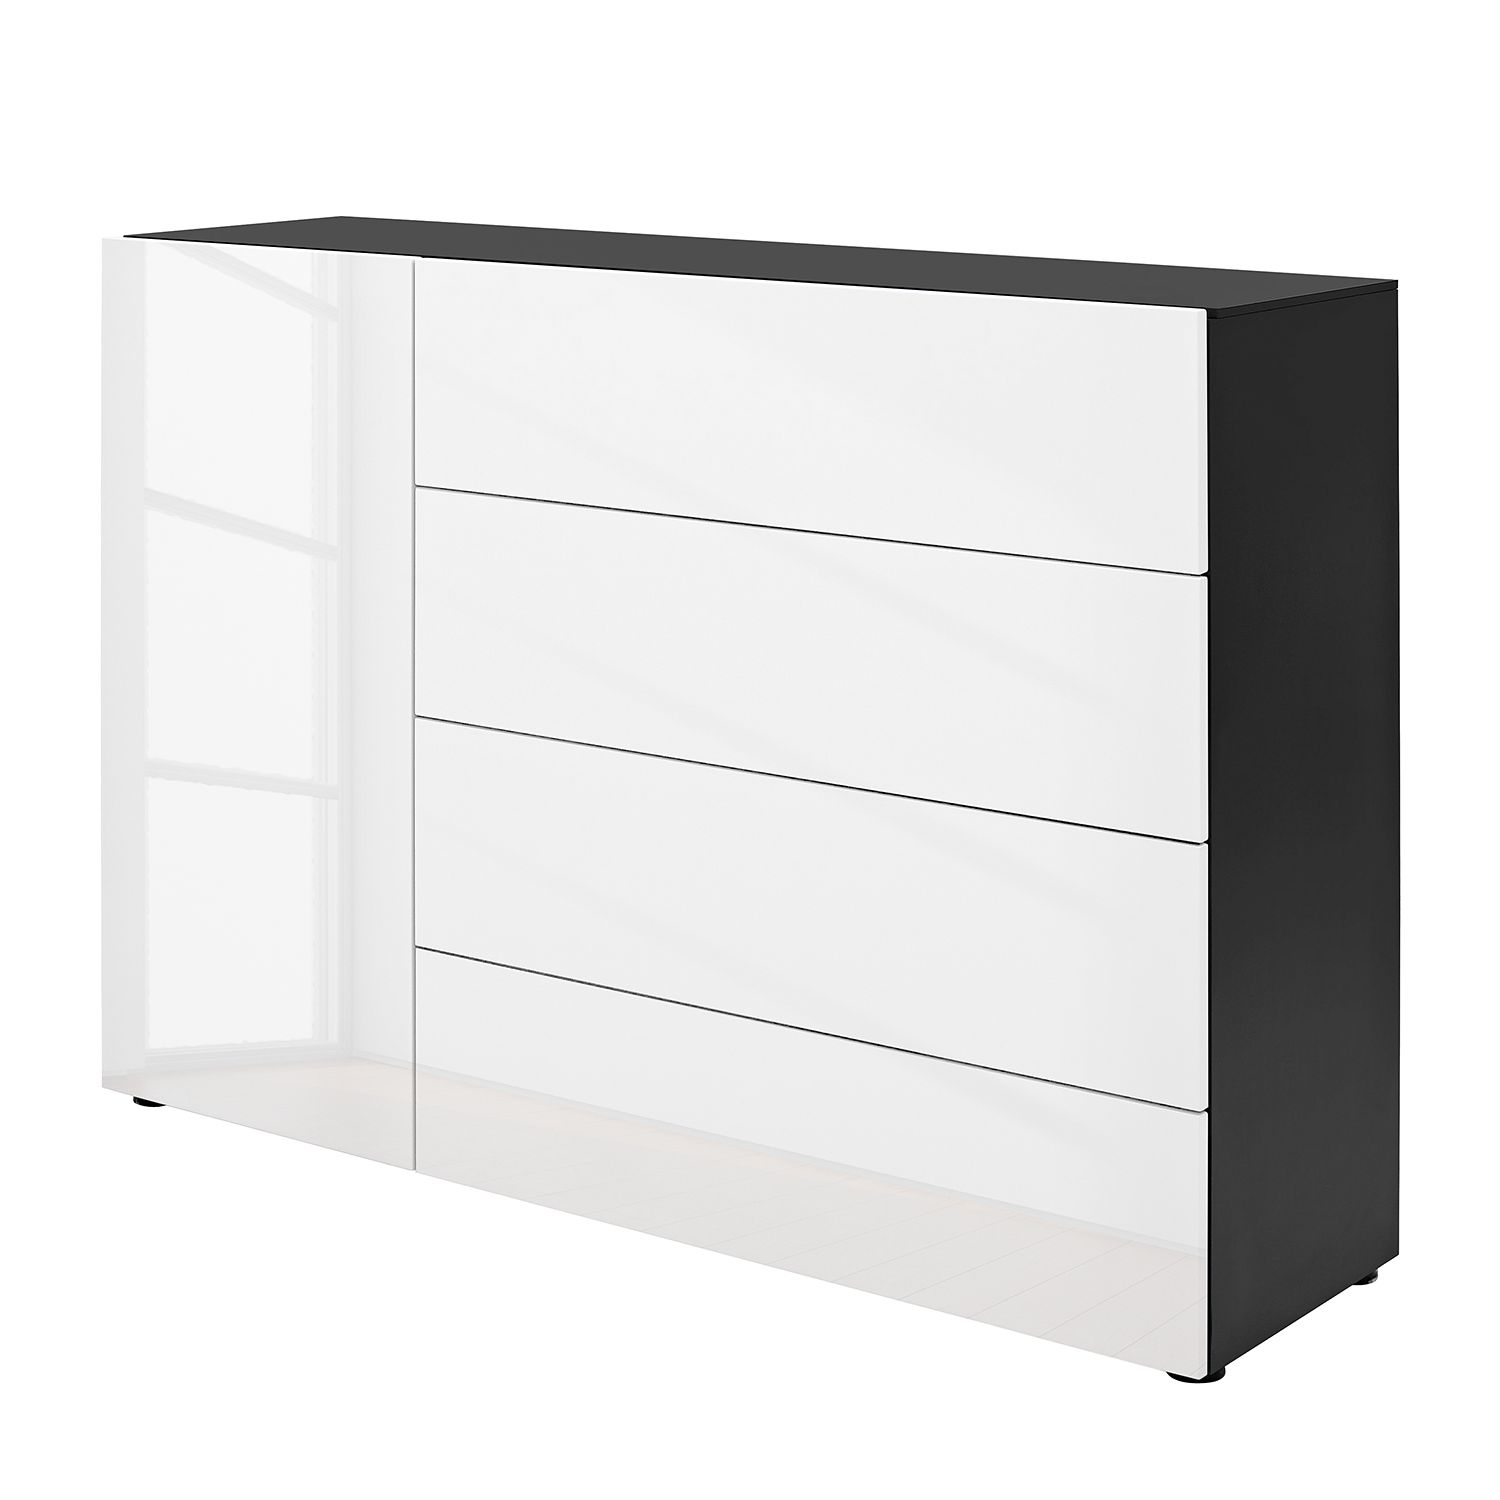 sideboard anthrazit hochglanz simple fabulous sideboard hochglanz grau with sideboard grau. Black Bedroom Furniture Sets. Home Design Ideas